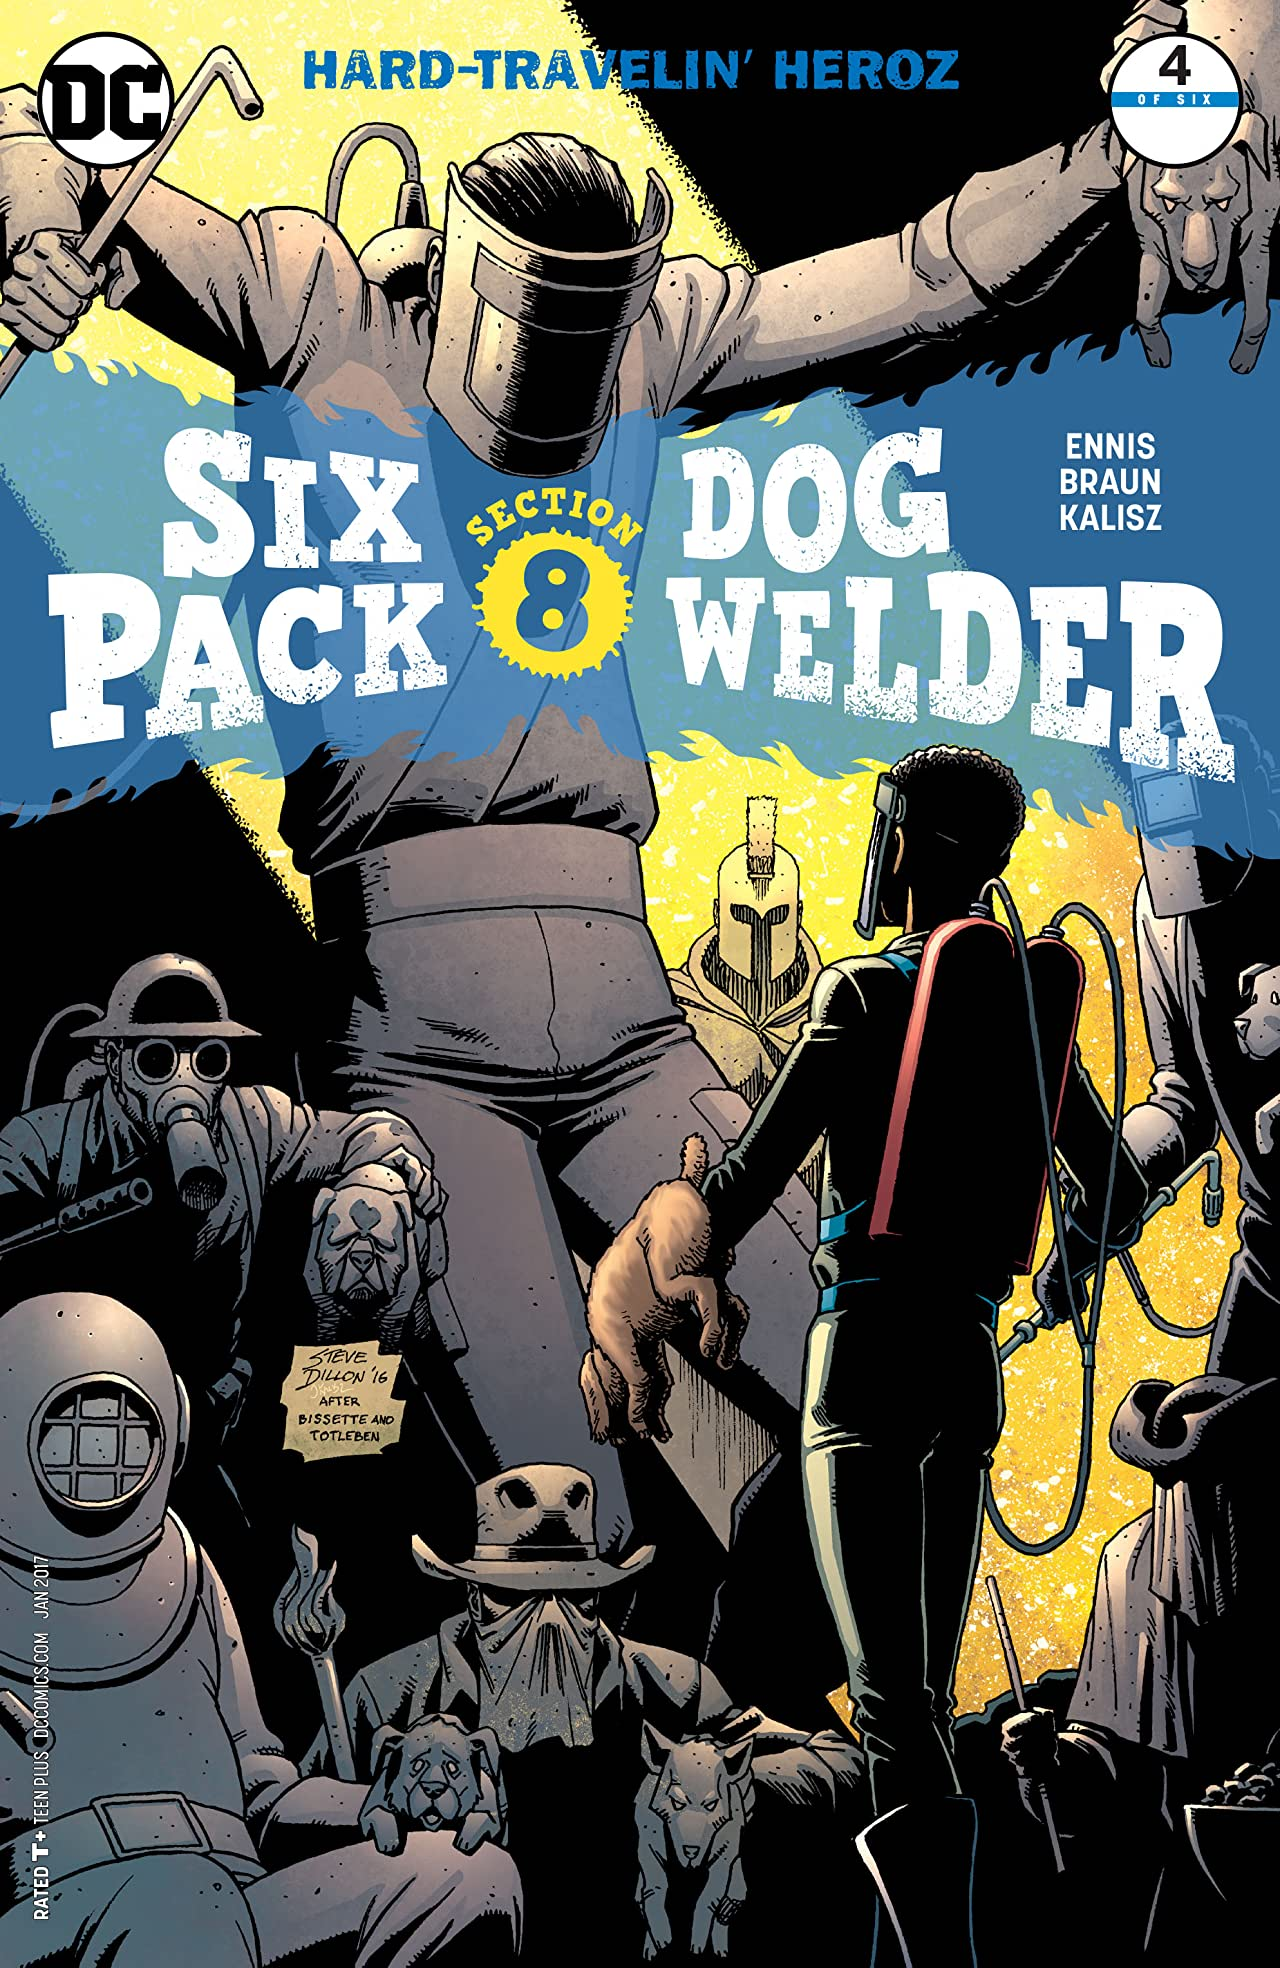 Sixpack and Dogwelder: Hard Travelin' Heroz (2016-2017) #4